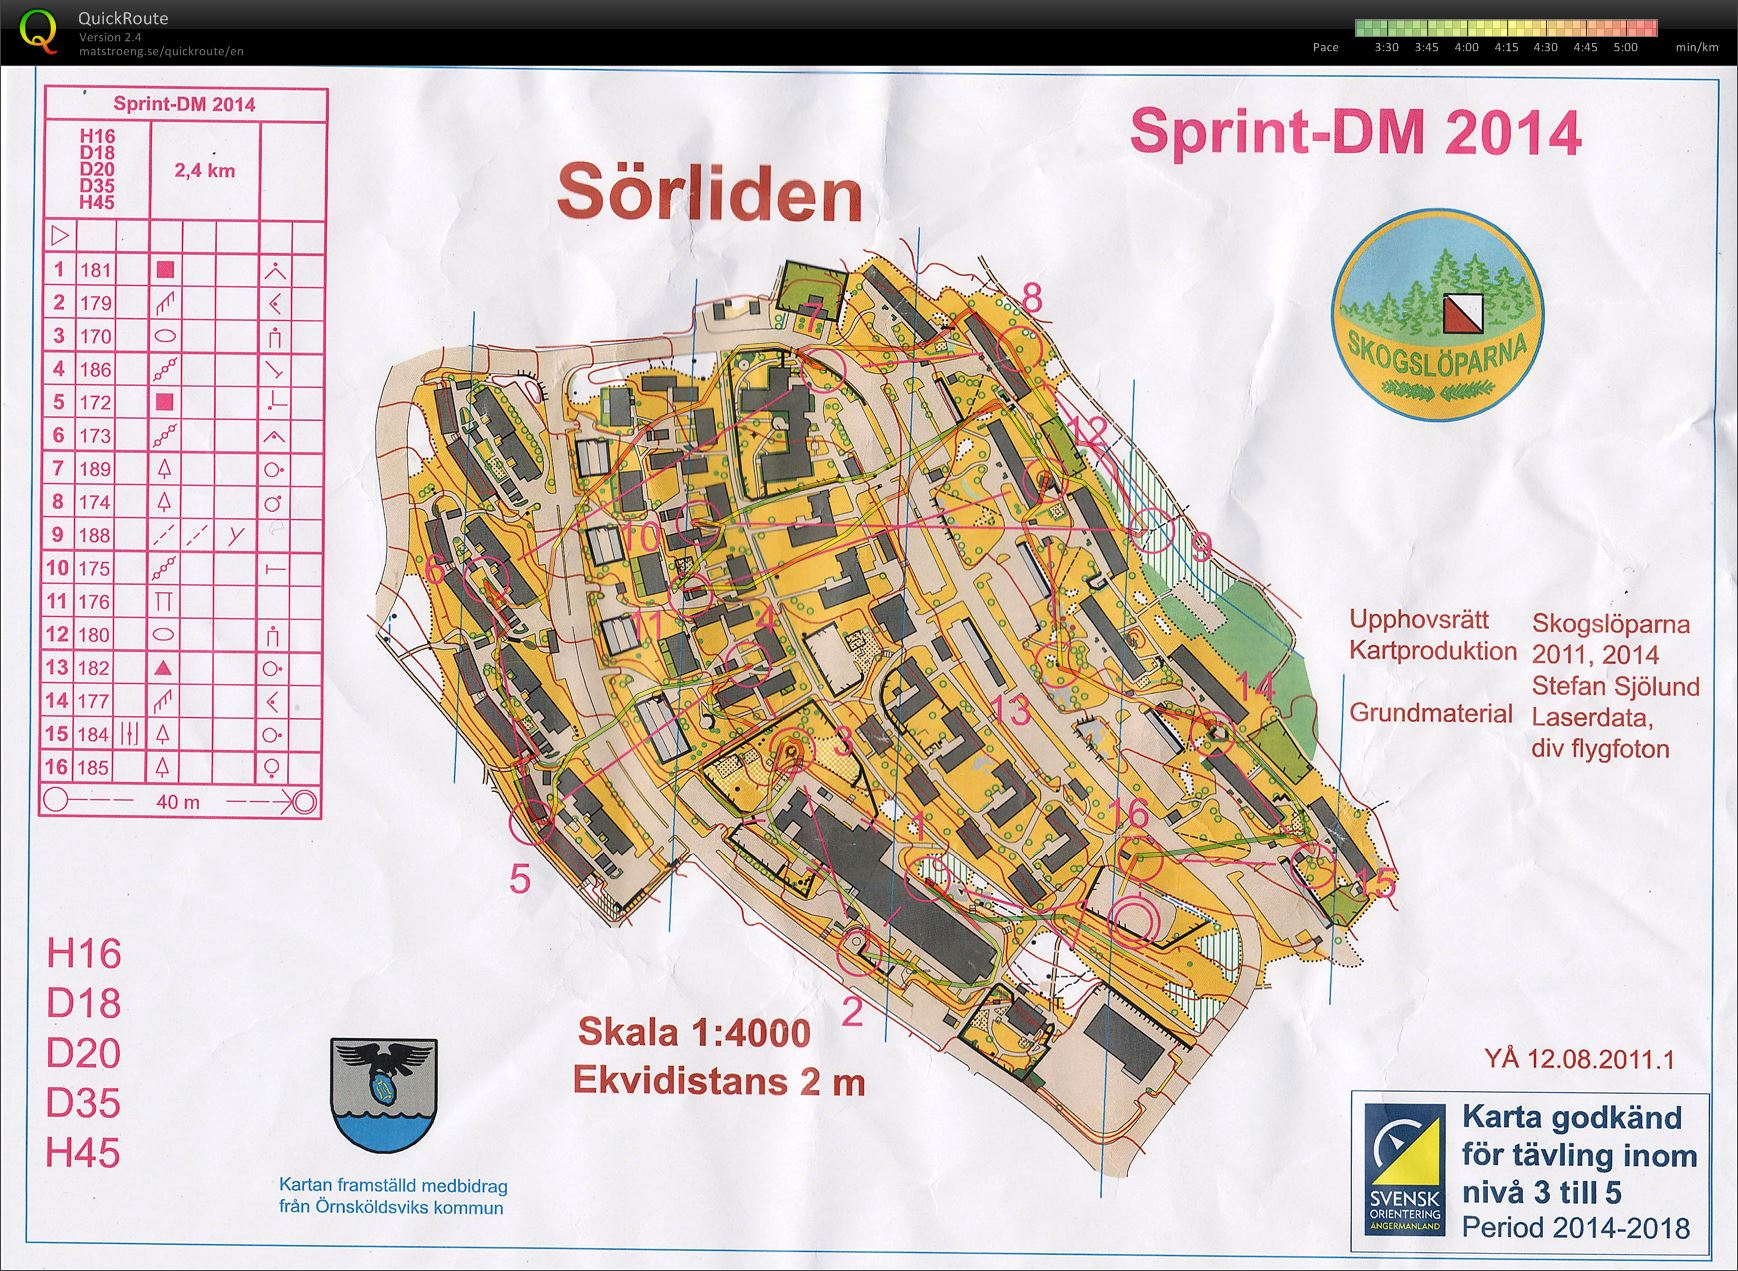 Sprint-DM Ångermanland (2014-06-25)